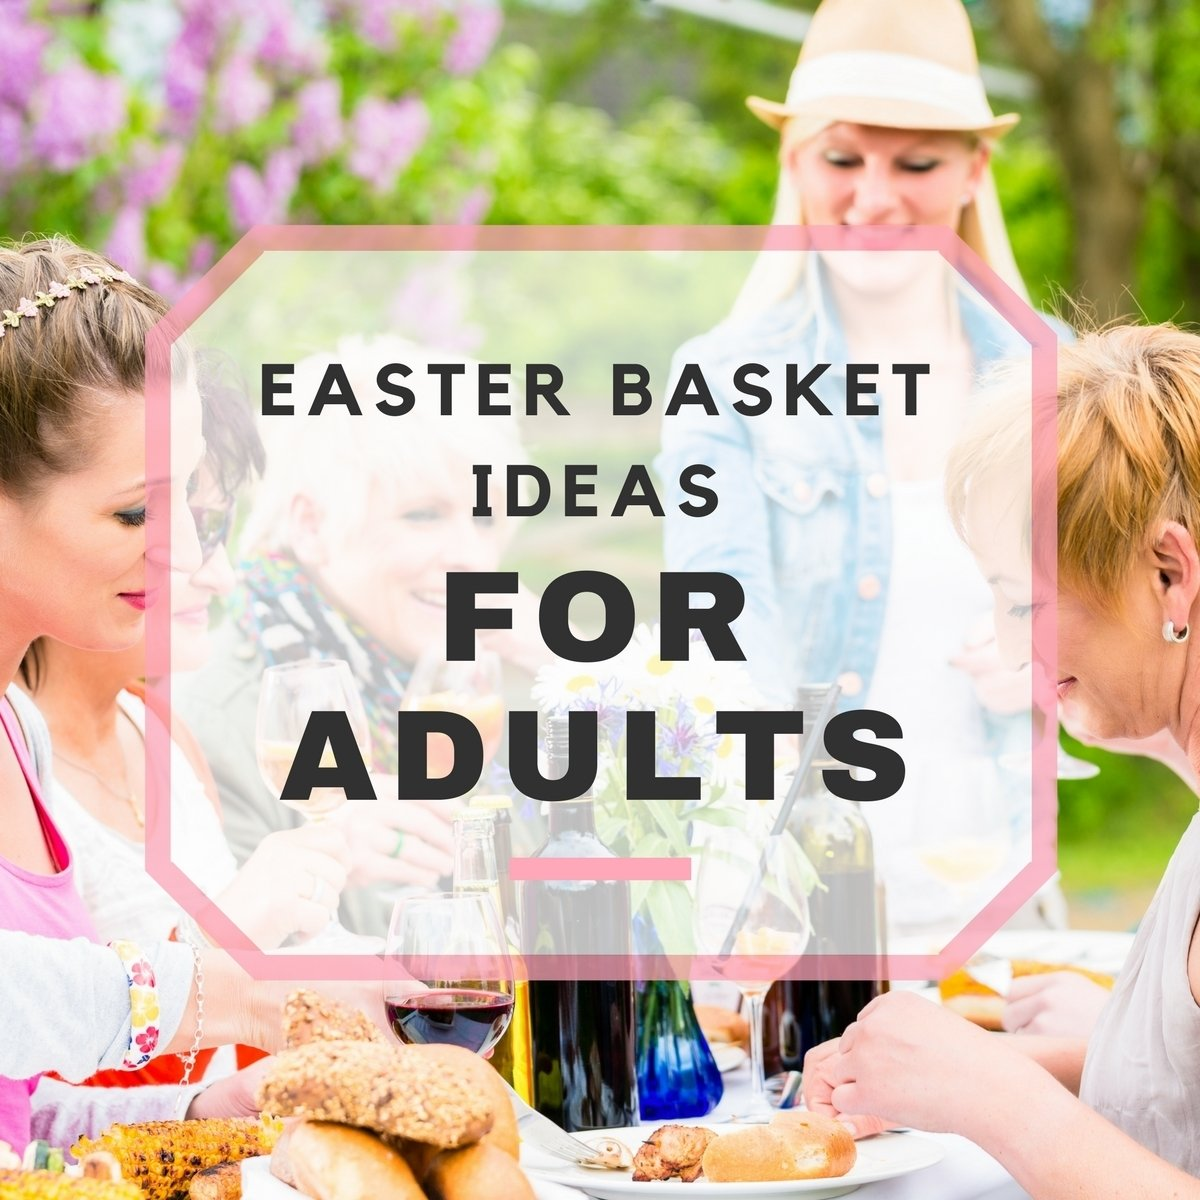 10 Beautiful Easter Baskets Ideas For Adults easter basket ideas for adults 1 2020